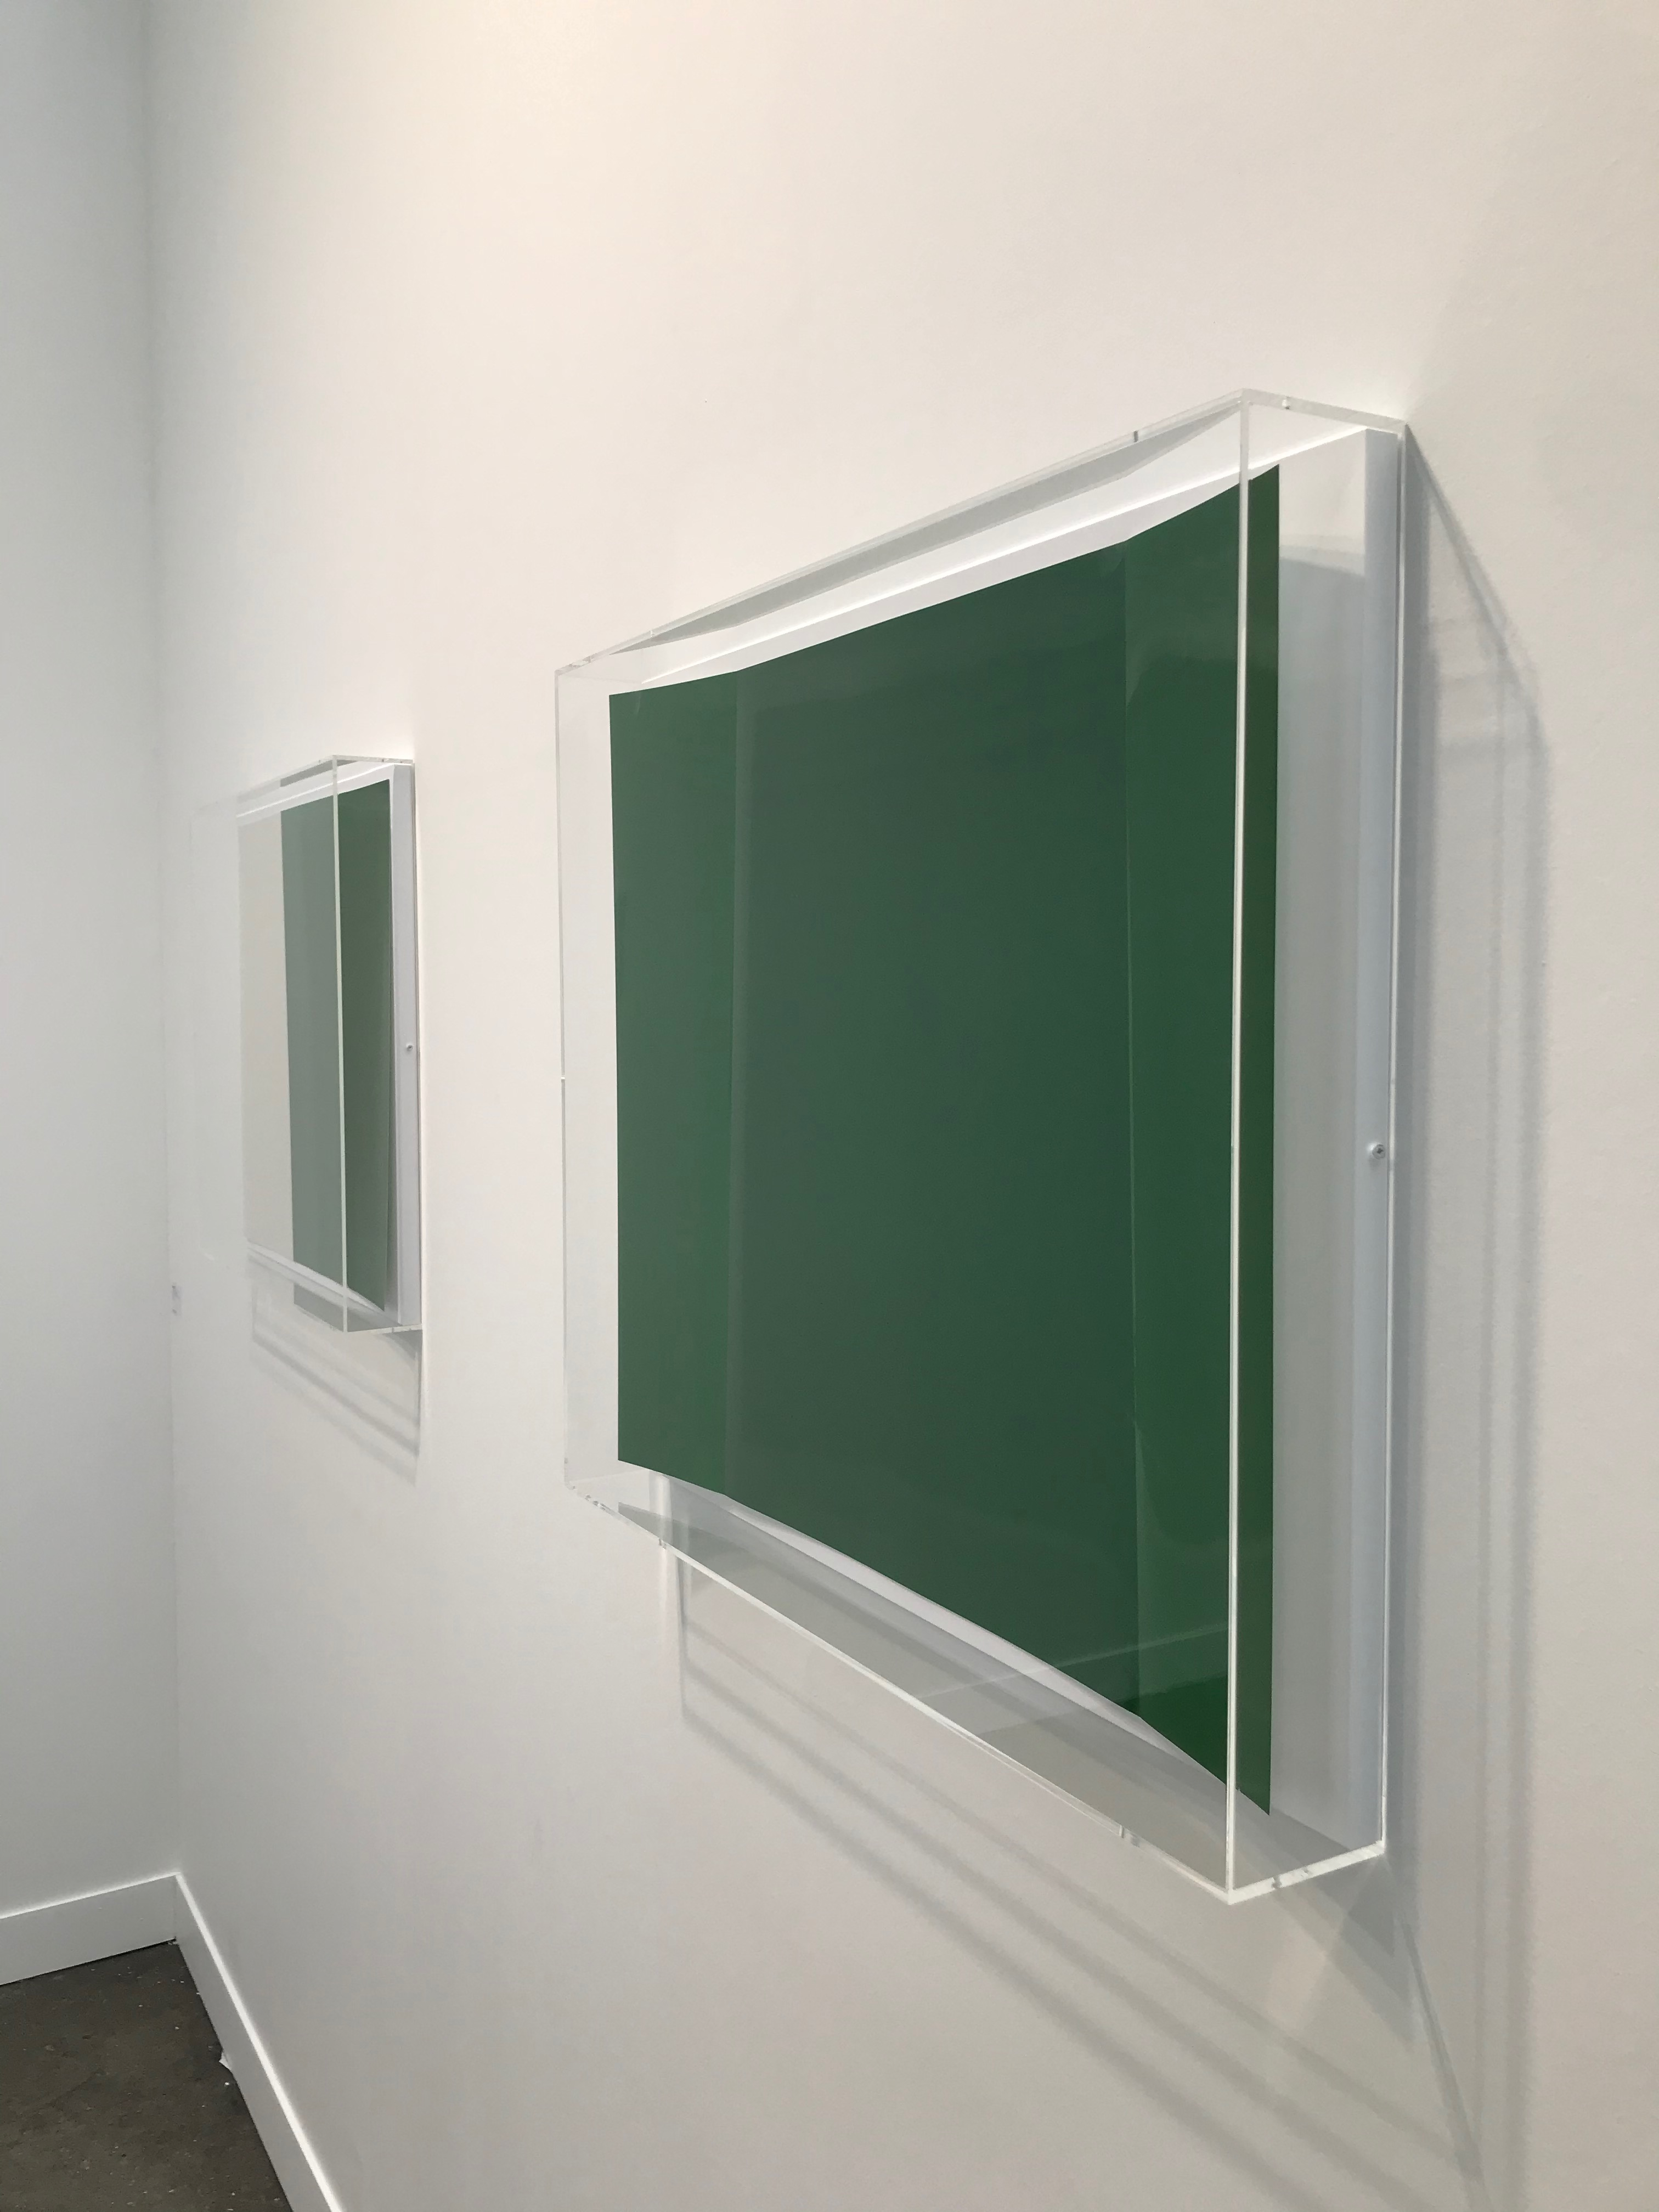 work by Wolfgang Tillmans shown by Galerie Buchholz